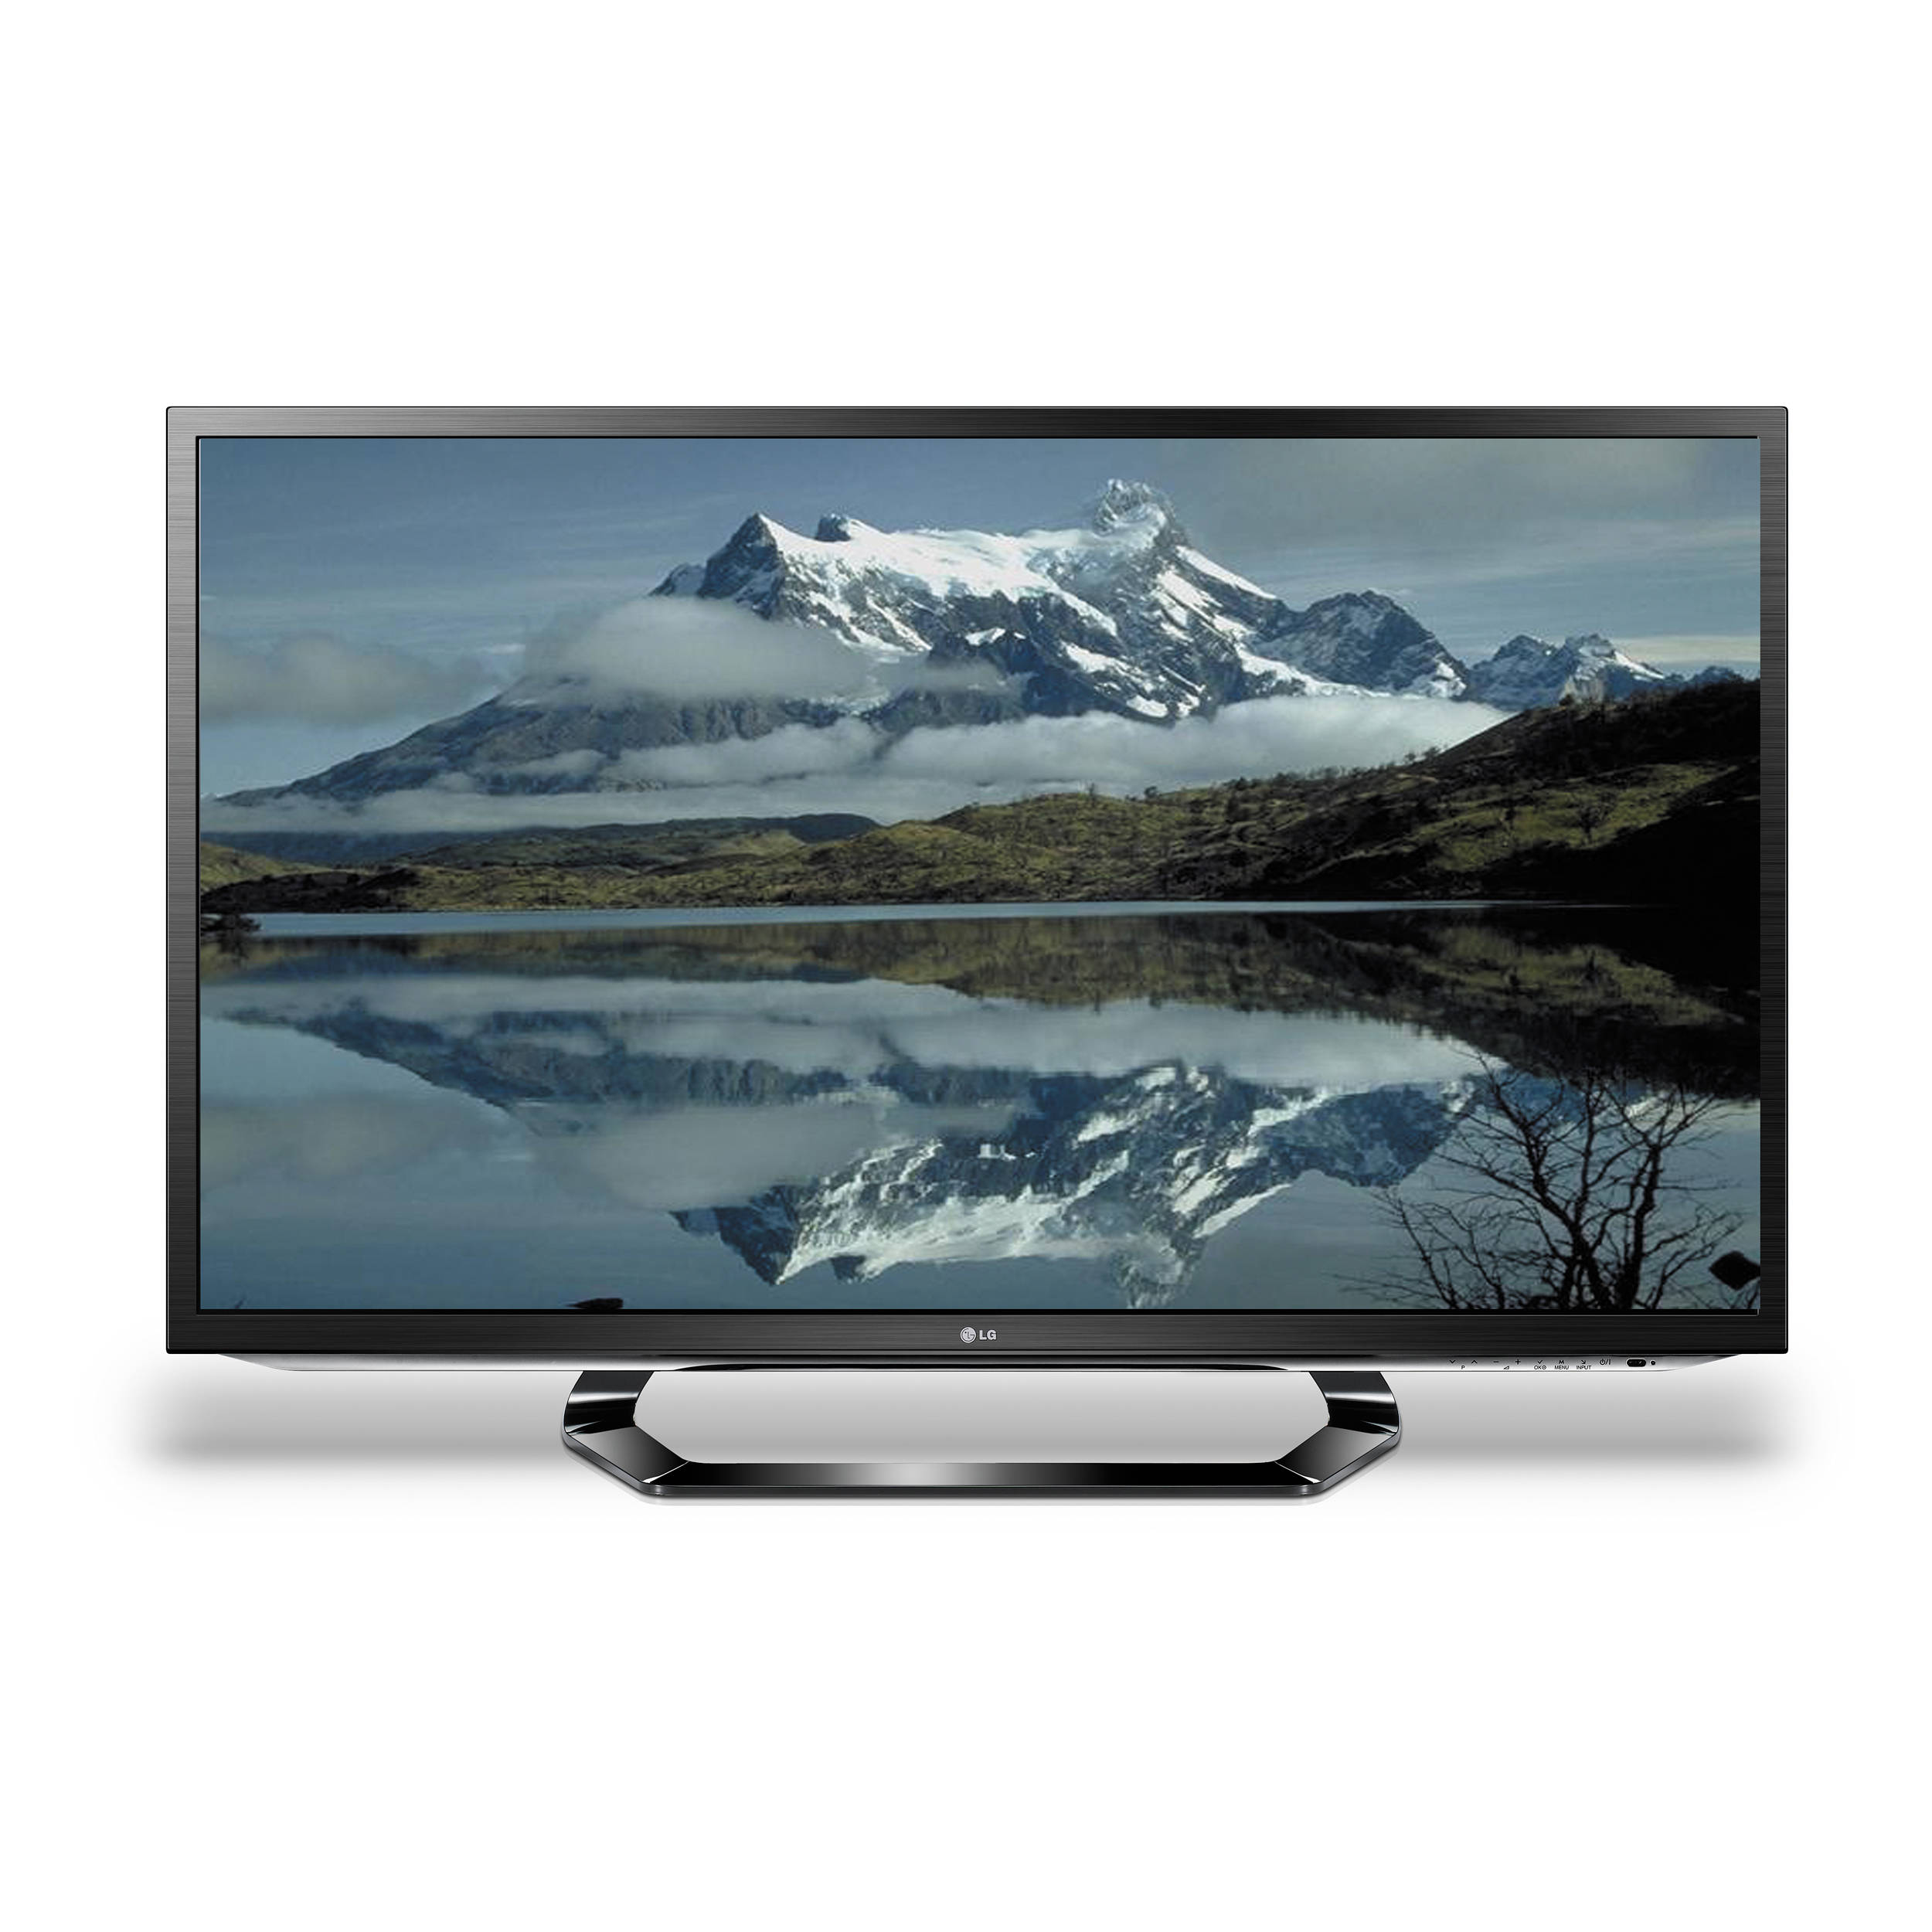 LG 42LM6200 TV Drivers Download